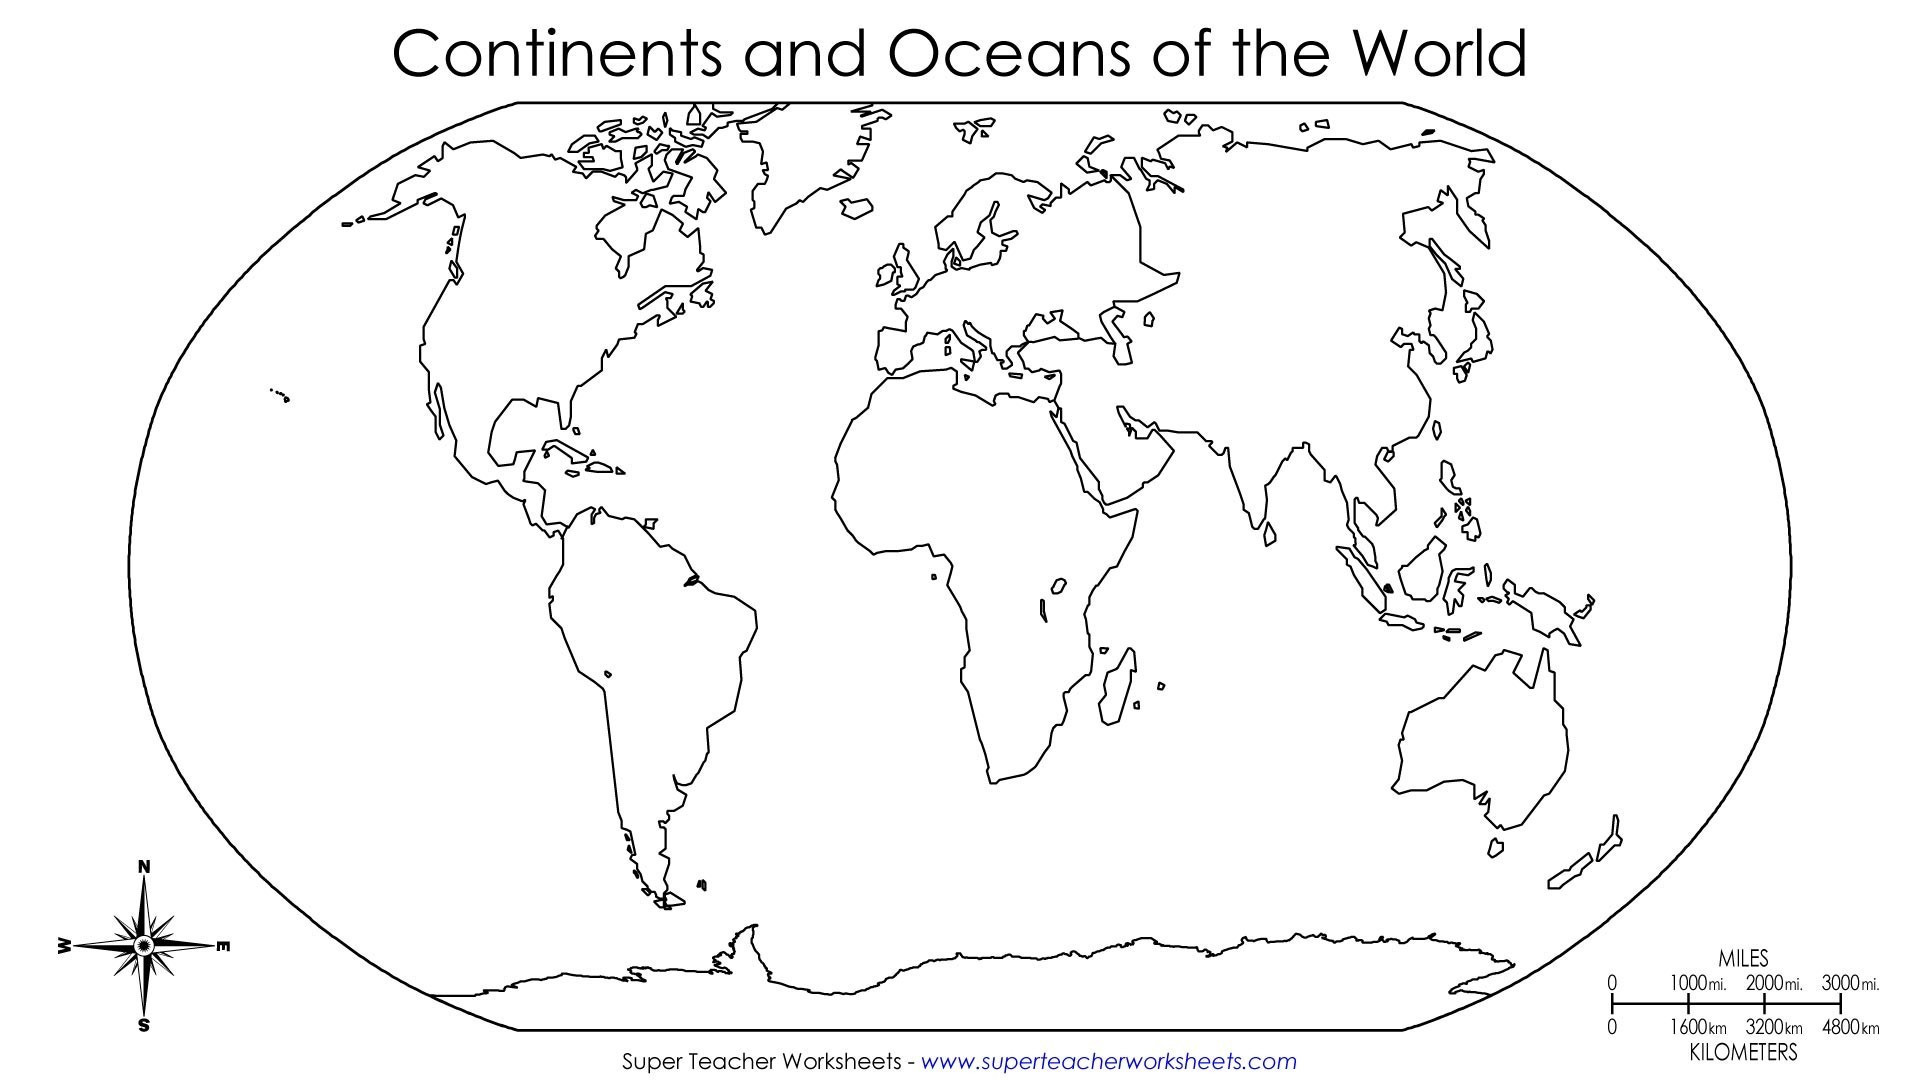 7 Continents Printable Map Luxury Printable Continents To Cut Out Fresh World Map With Continent Names